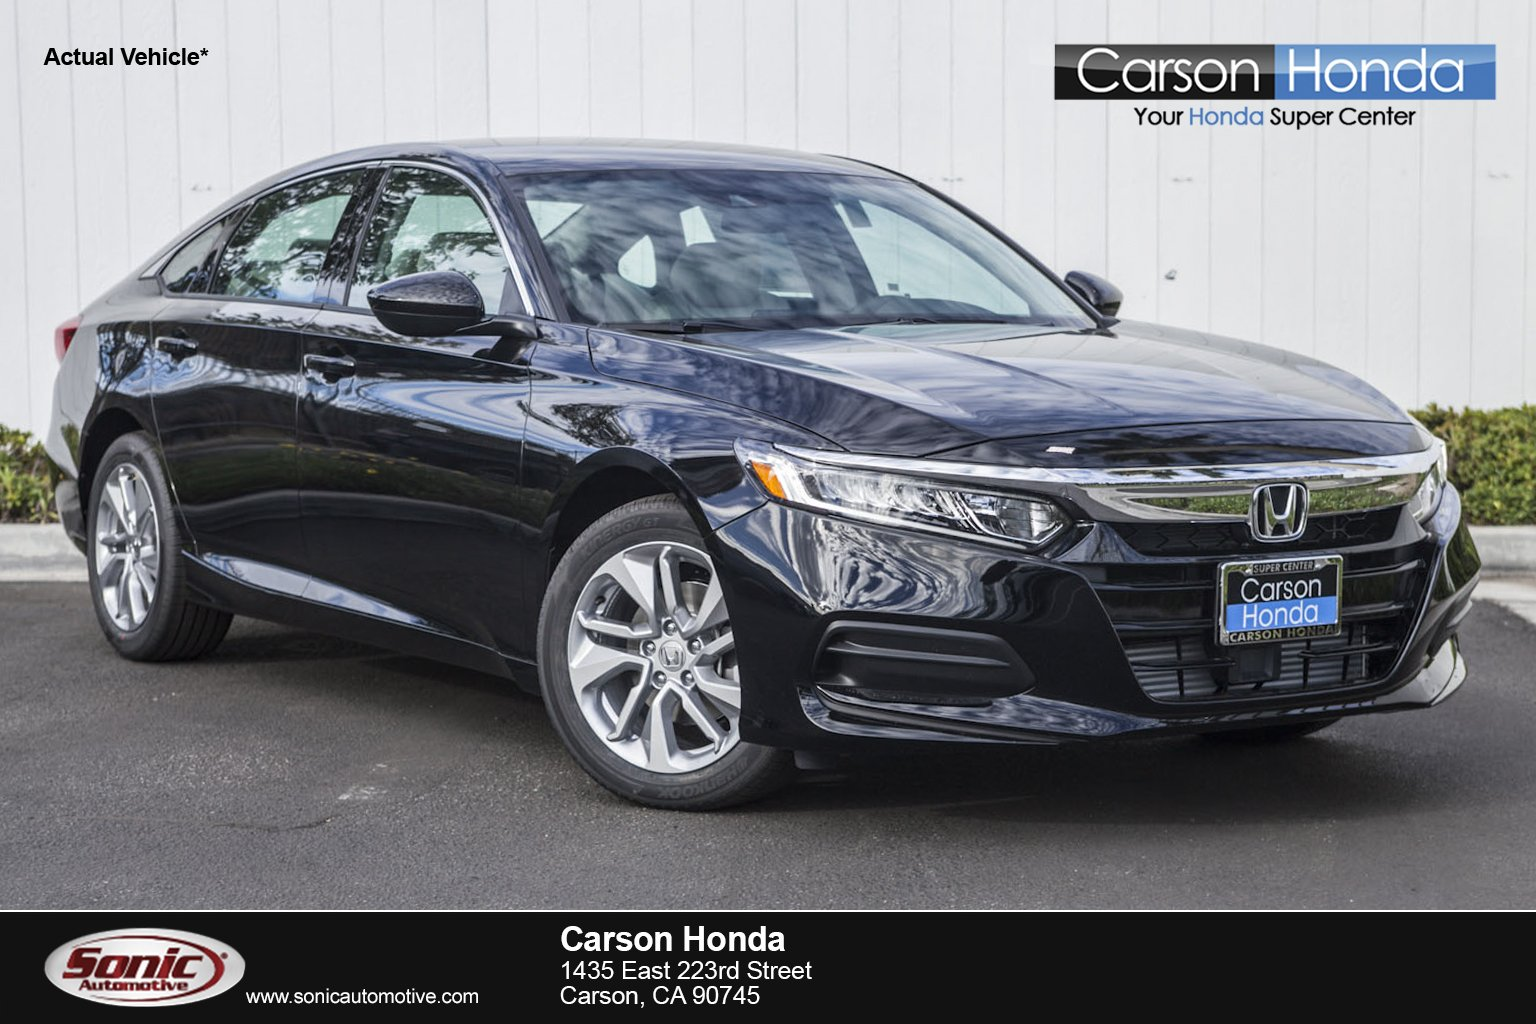 Honda Dealership Orange County >> Carson Honda Honda Dealer Serving Los Angeles